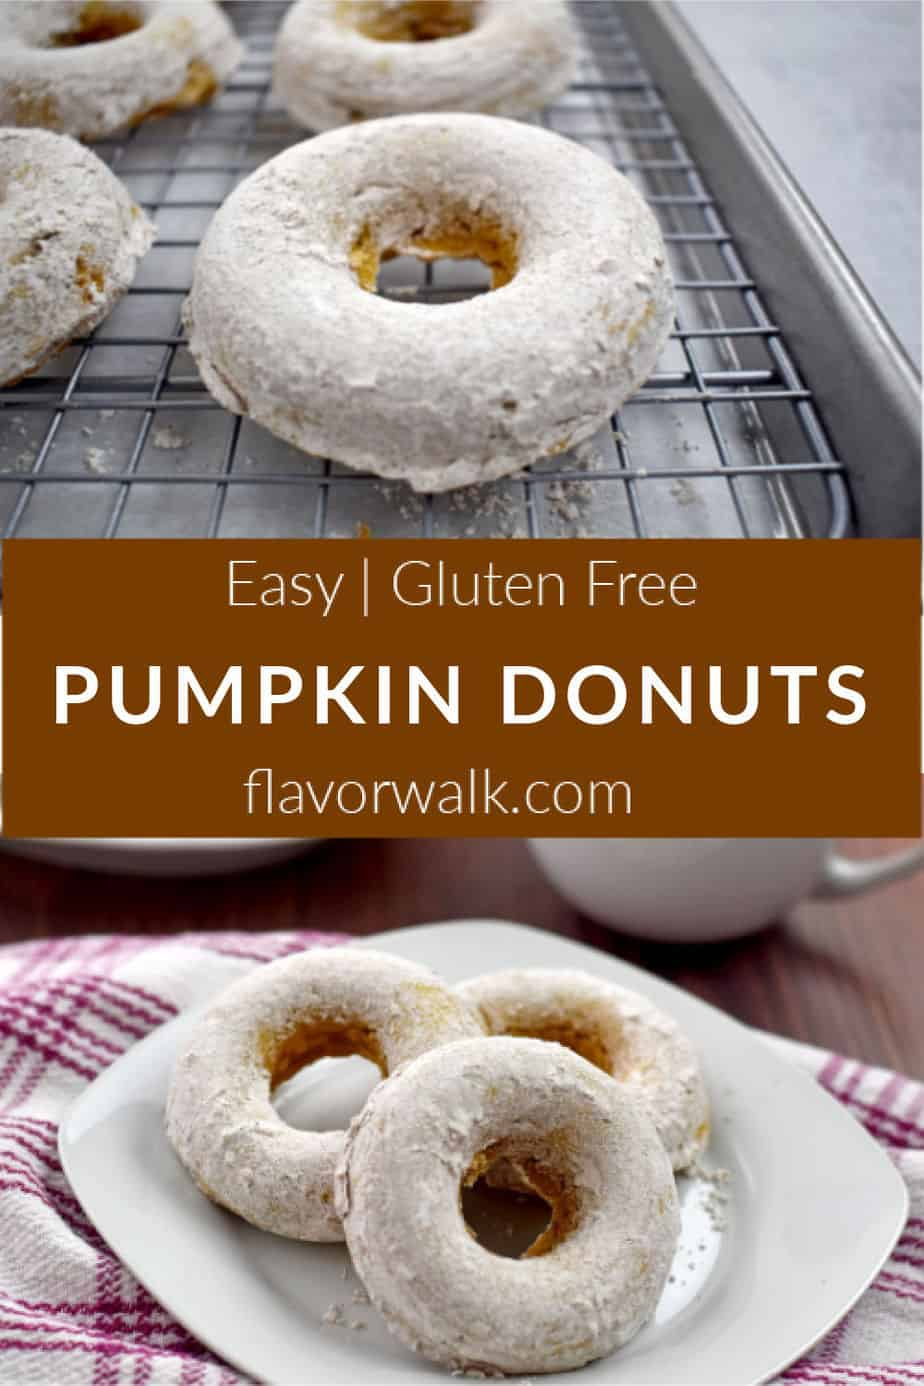 A Pinterest pin with gf pumpkin donuts on a wire rack in top image, three gf pumpkin donuts on white plate in bottom image, and brown text box in between the images.